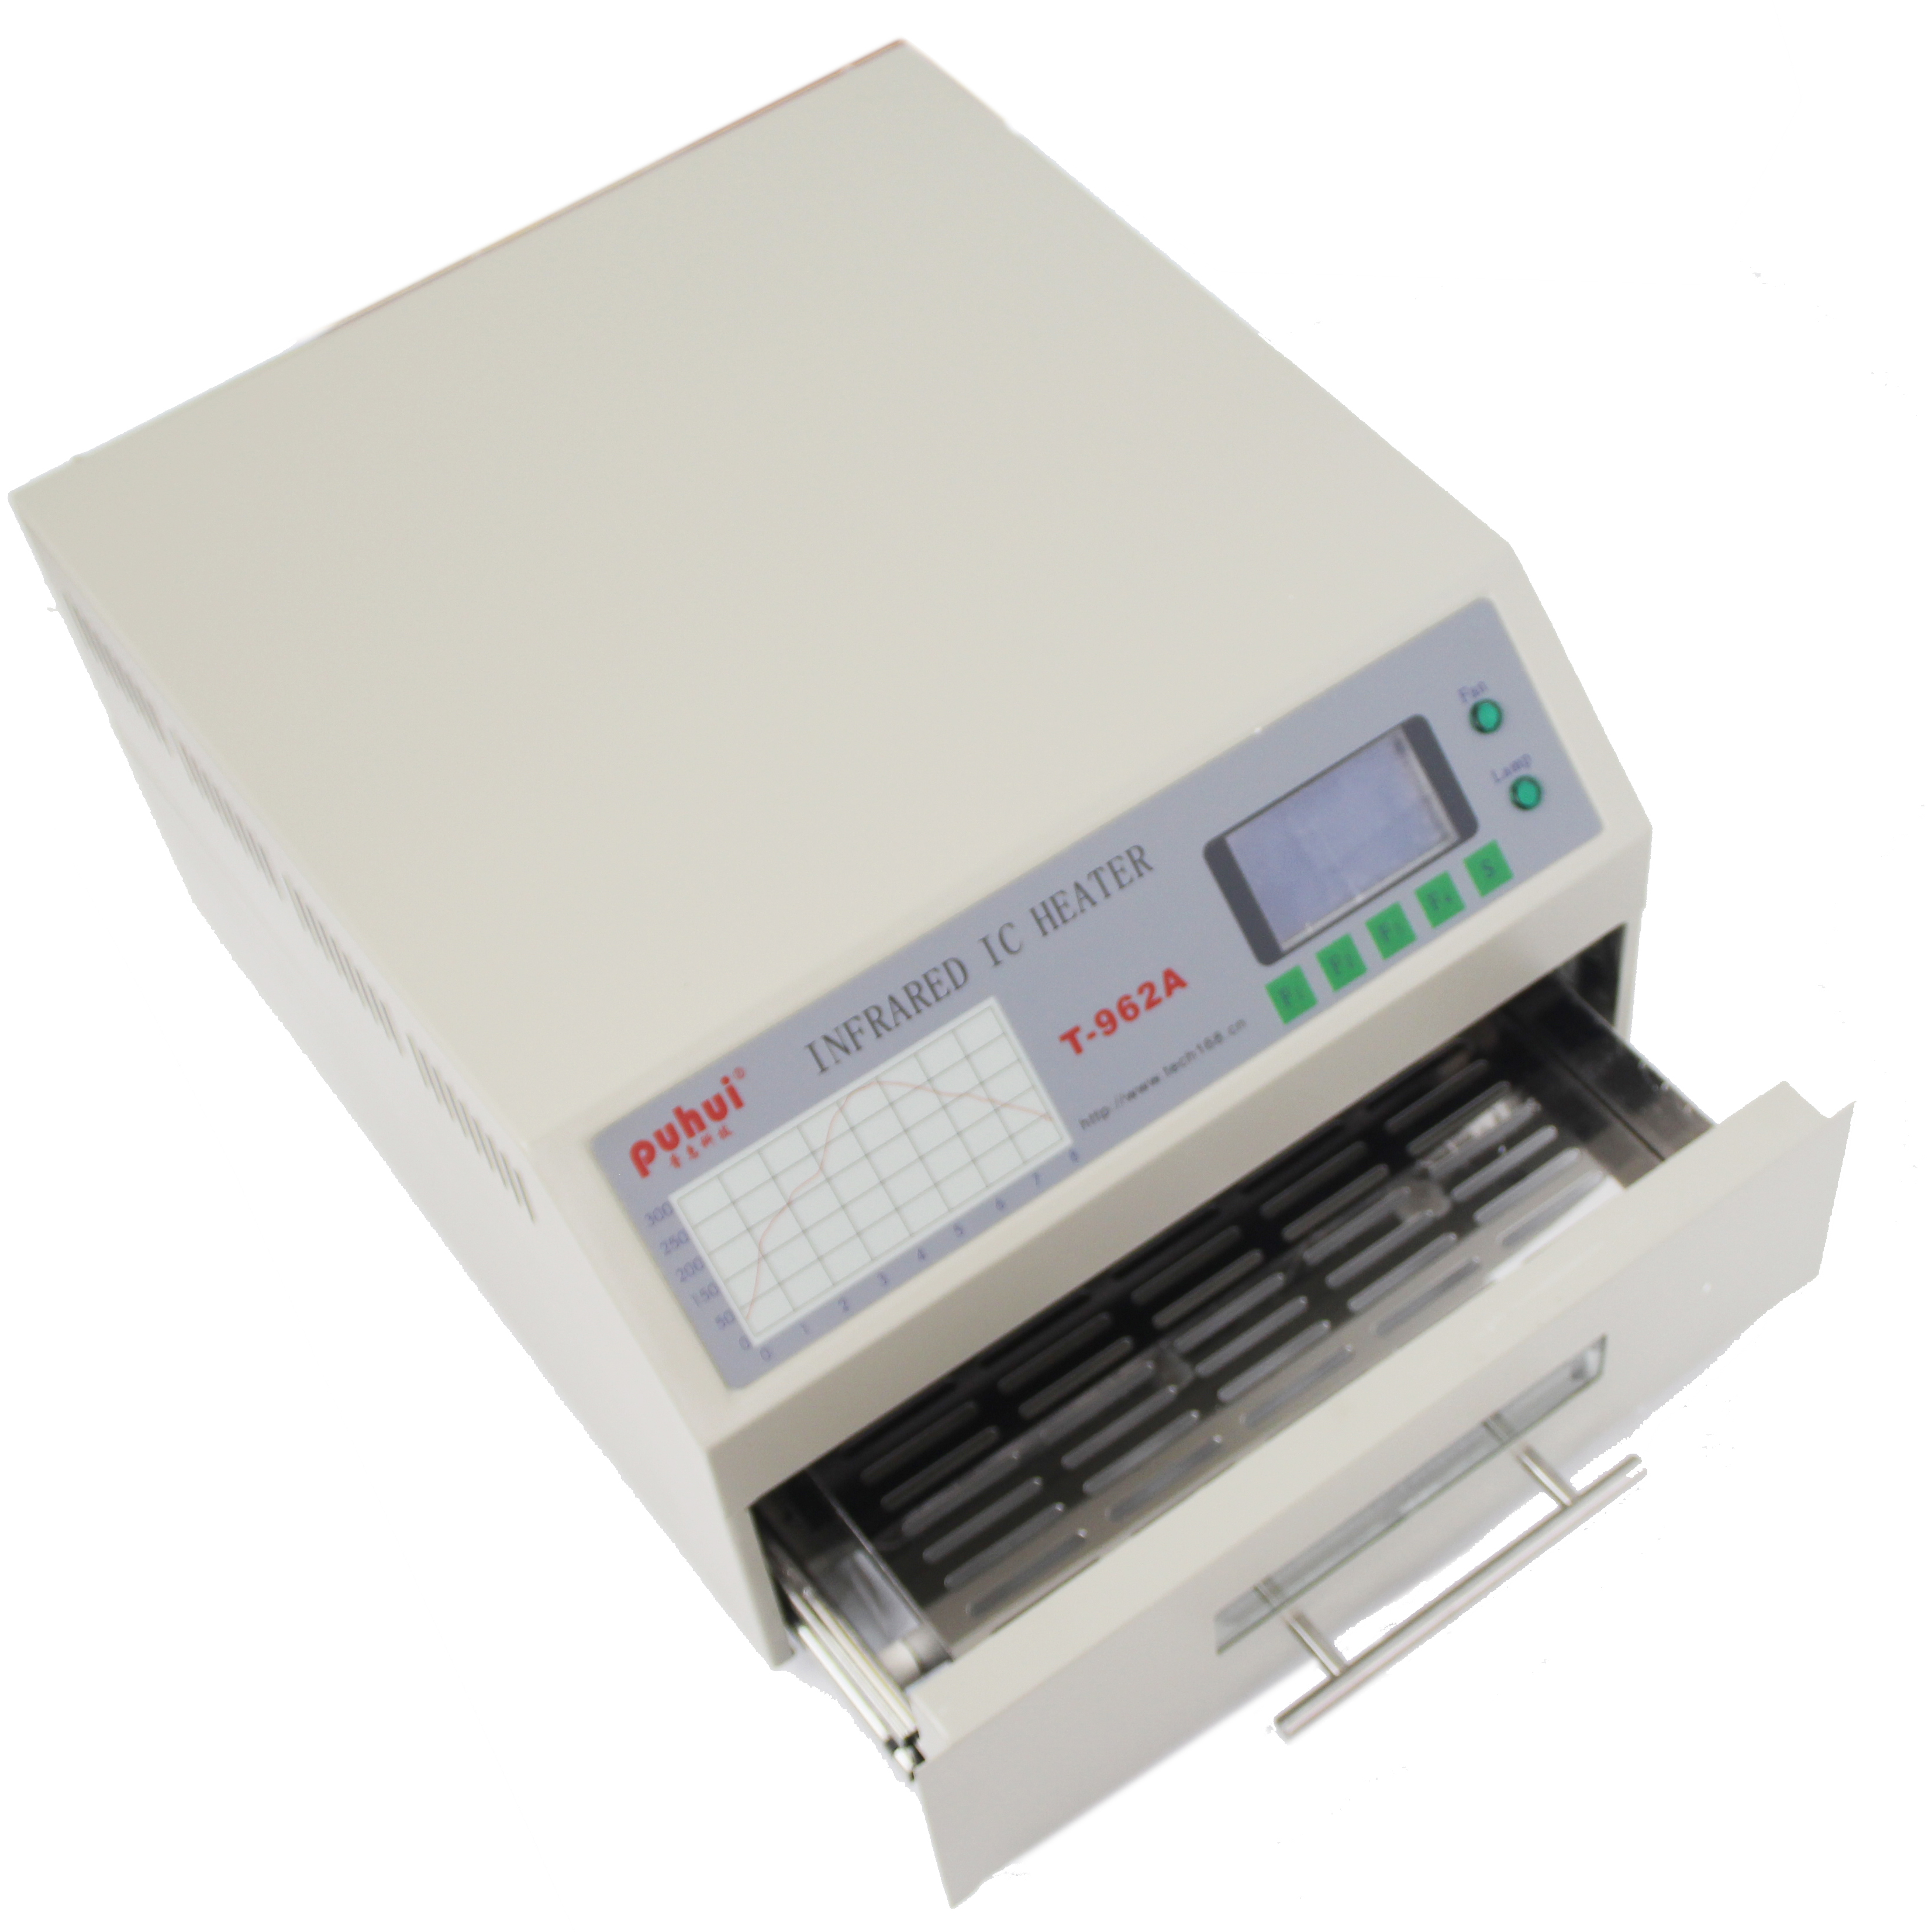 t-962-desktop-reflow-oven-infrared-ic-heater-soldering-machine-800w-180-x-235mm-t962-for-bga-smd-smt-rework